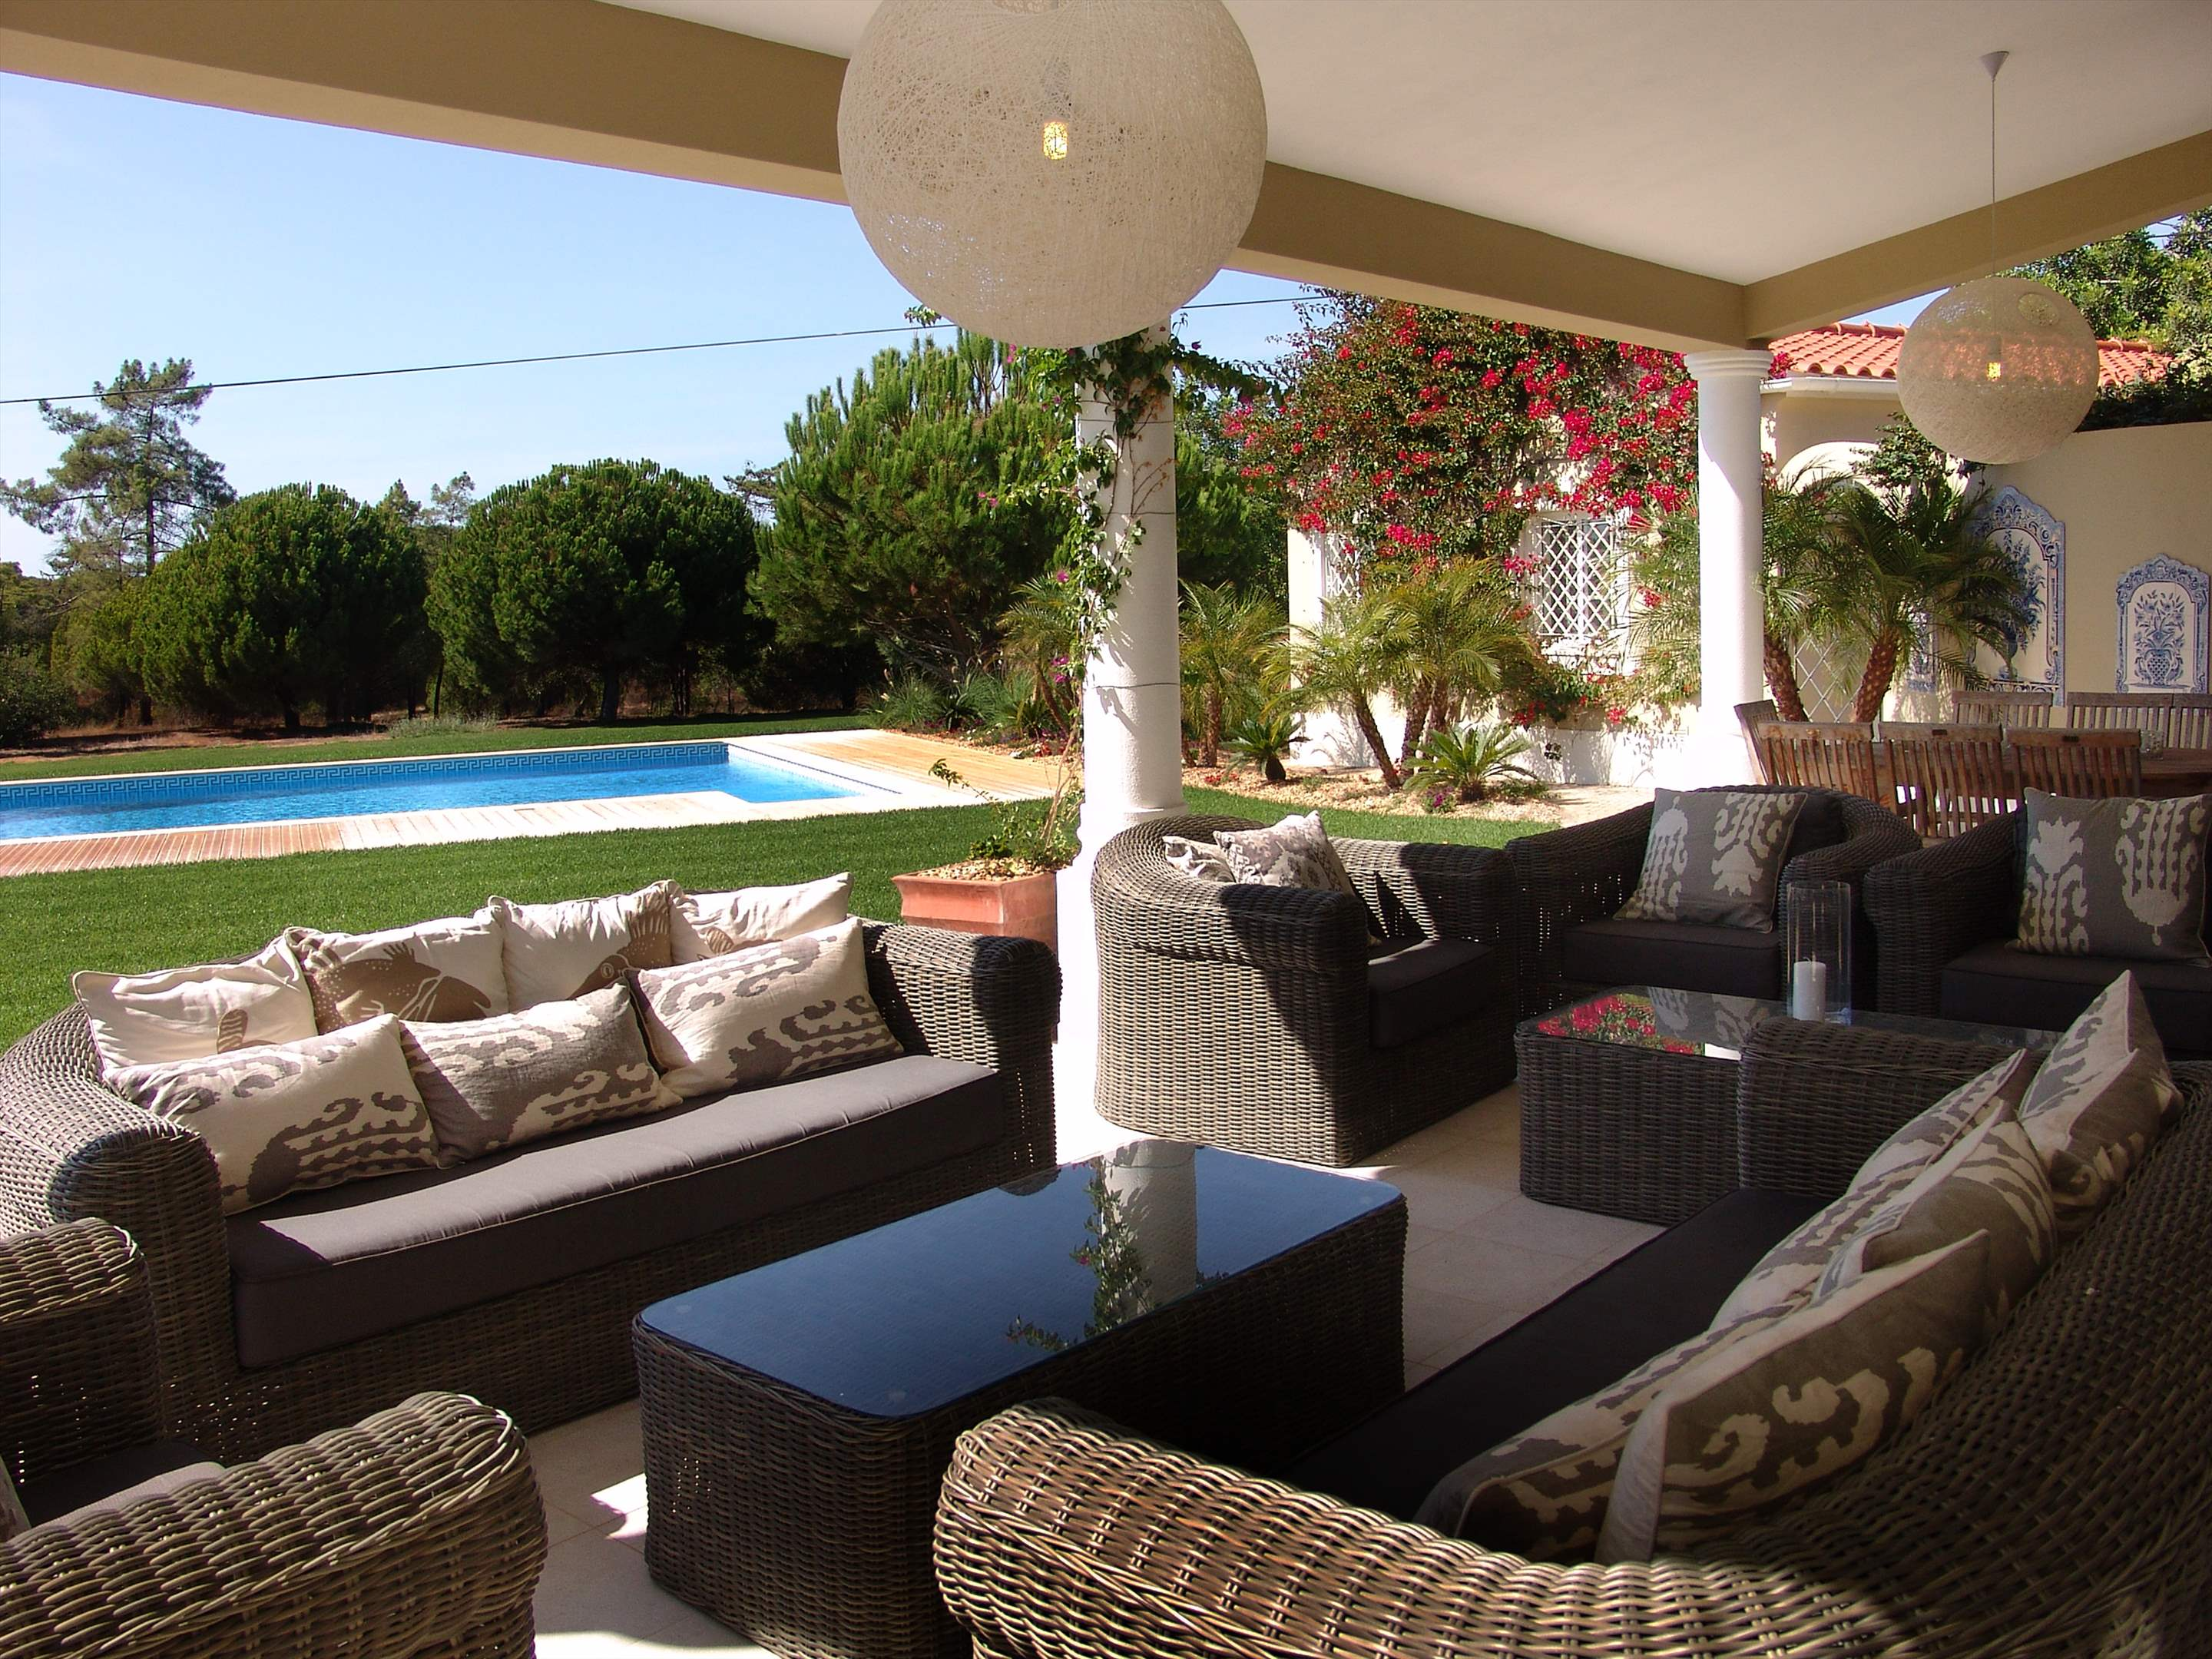 Casa Filomena, Six Bedroom Rate, 6 bedroom villa in Quinta do Lago, Algarve Photo #11